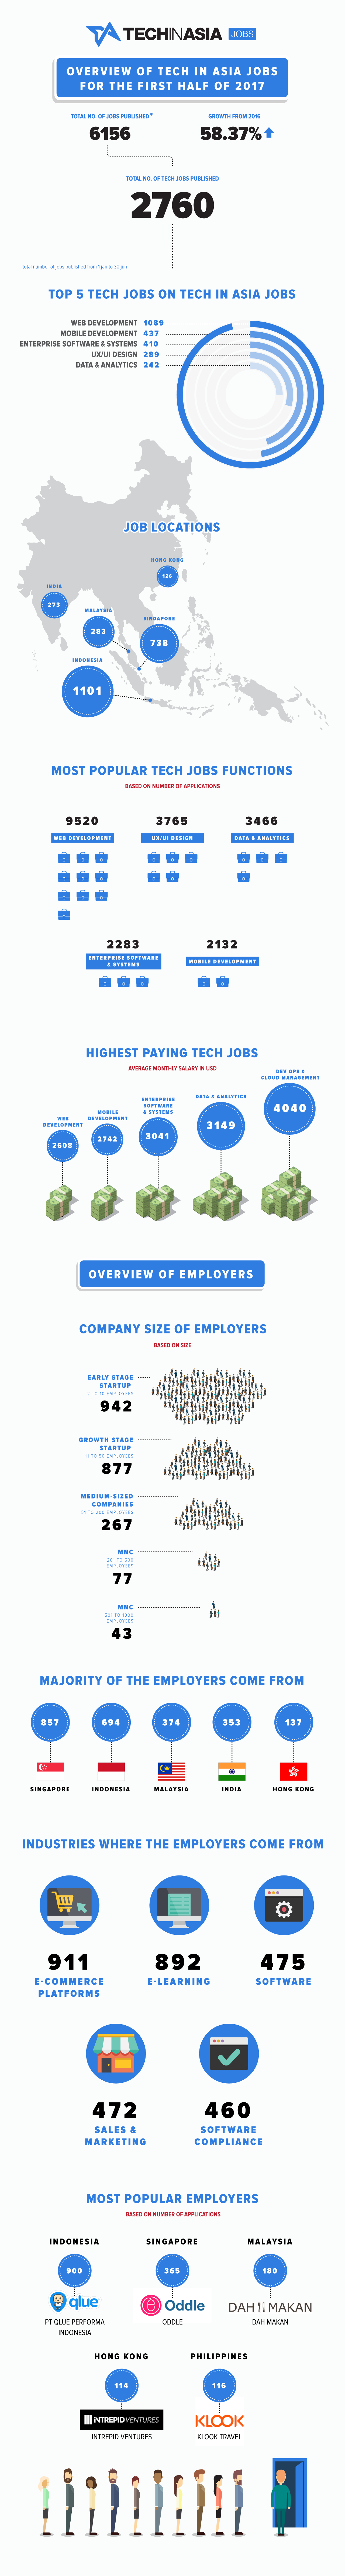 E-commerce companies hiring most aggressively, TIA Jobs report reveals (Infographic)